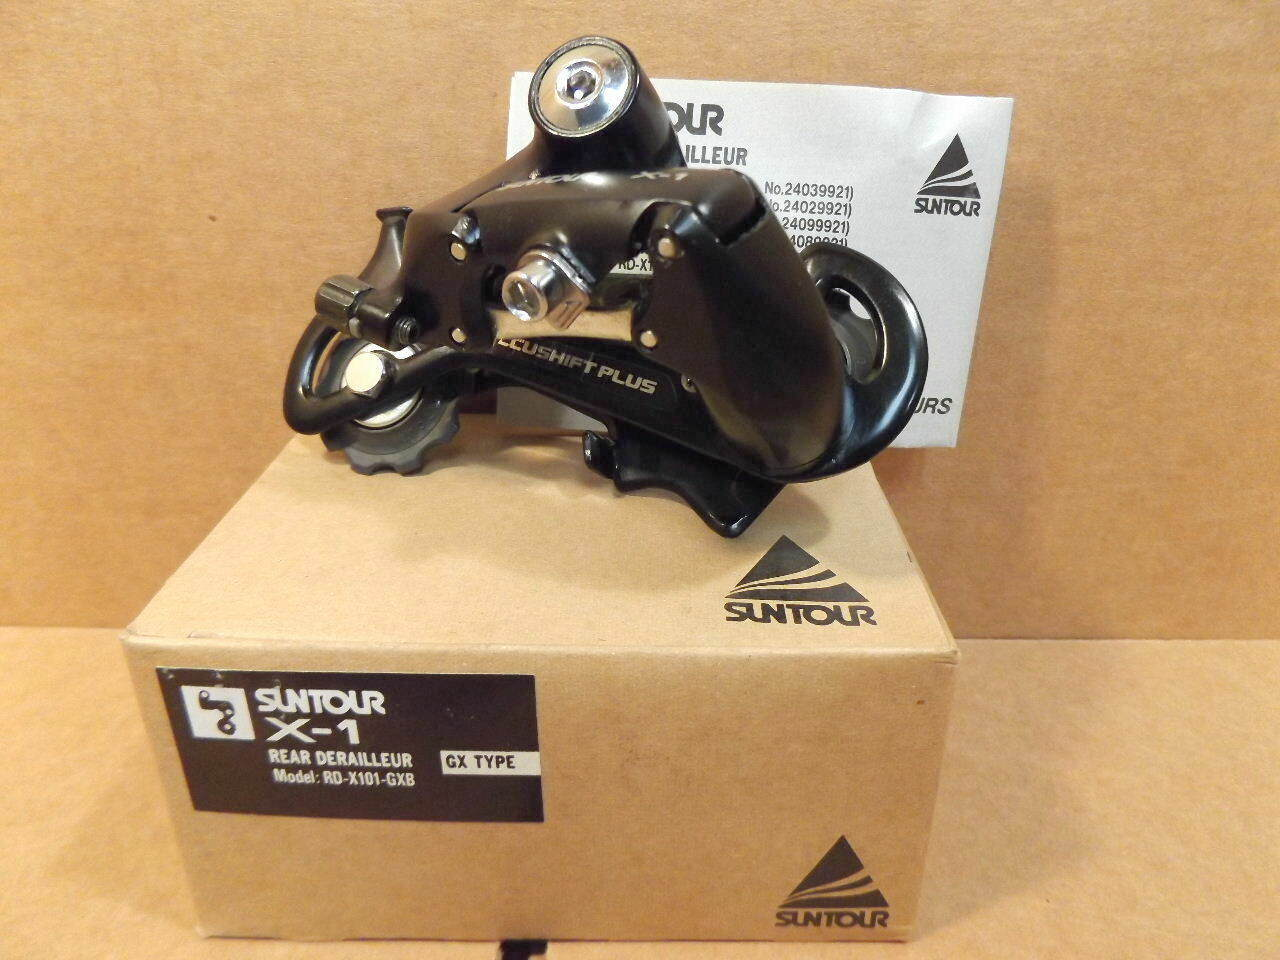 New-Old-Stock Suntour X-1 Rear Derailleur (Long Cage)...6 7 Speed Indexing